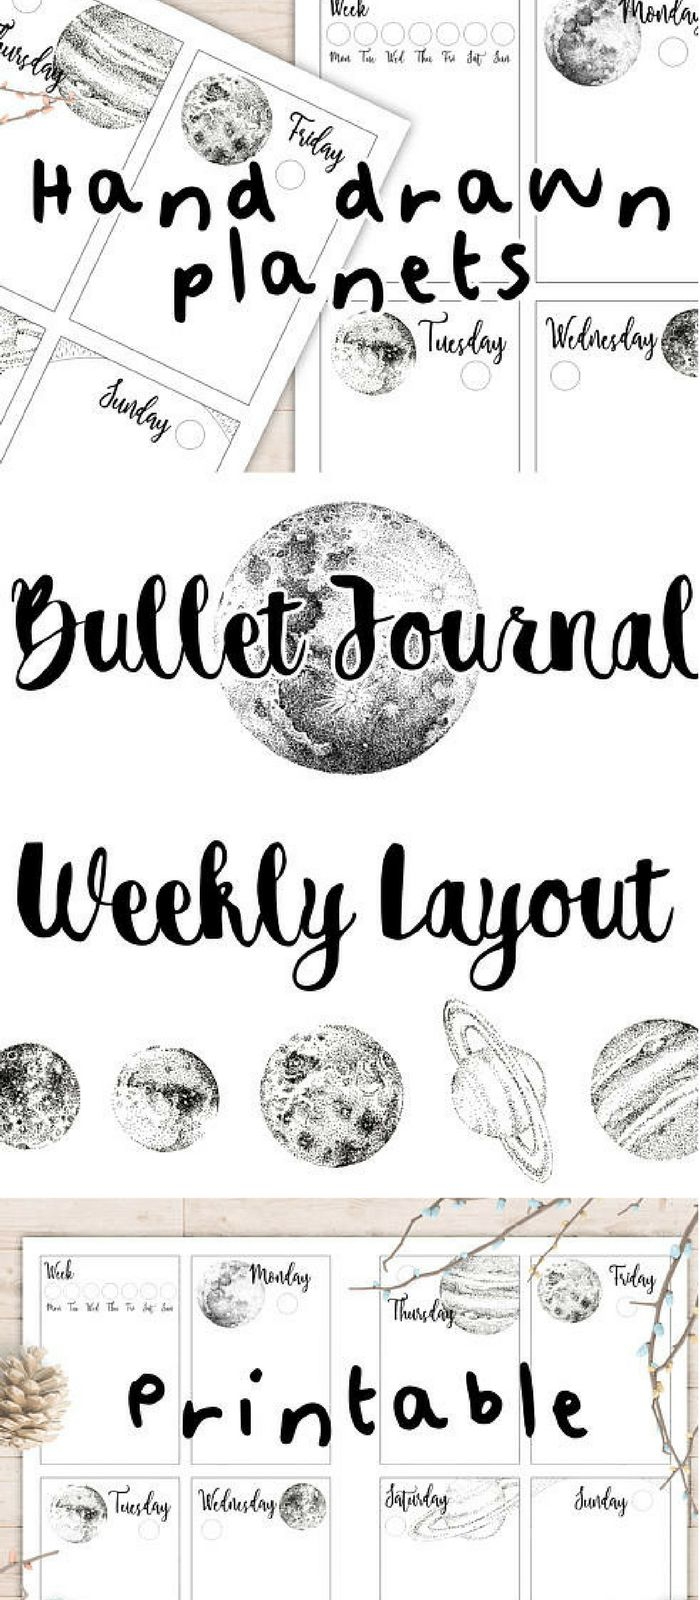 Absolutely beautiful plant themed hand drawn bullet journal printable weekly spread. I am really into the printables lately because I love the pretty arty bujo thing but I just don't have the time or skill to draw it myself! This is awesome because you can just stick it any any notebook and voila. Bonus points for cute washi tape and coloring in. #ad #printable #bulletjournal #bujo #weeklyspread